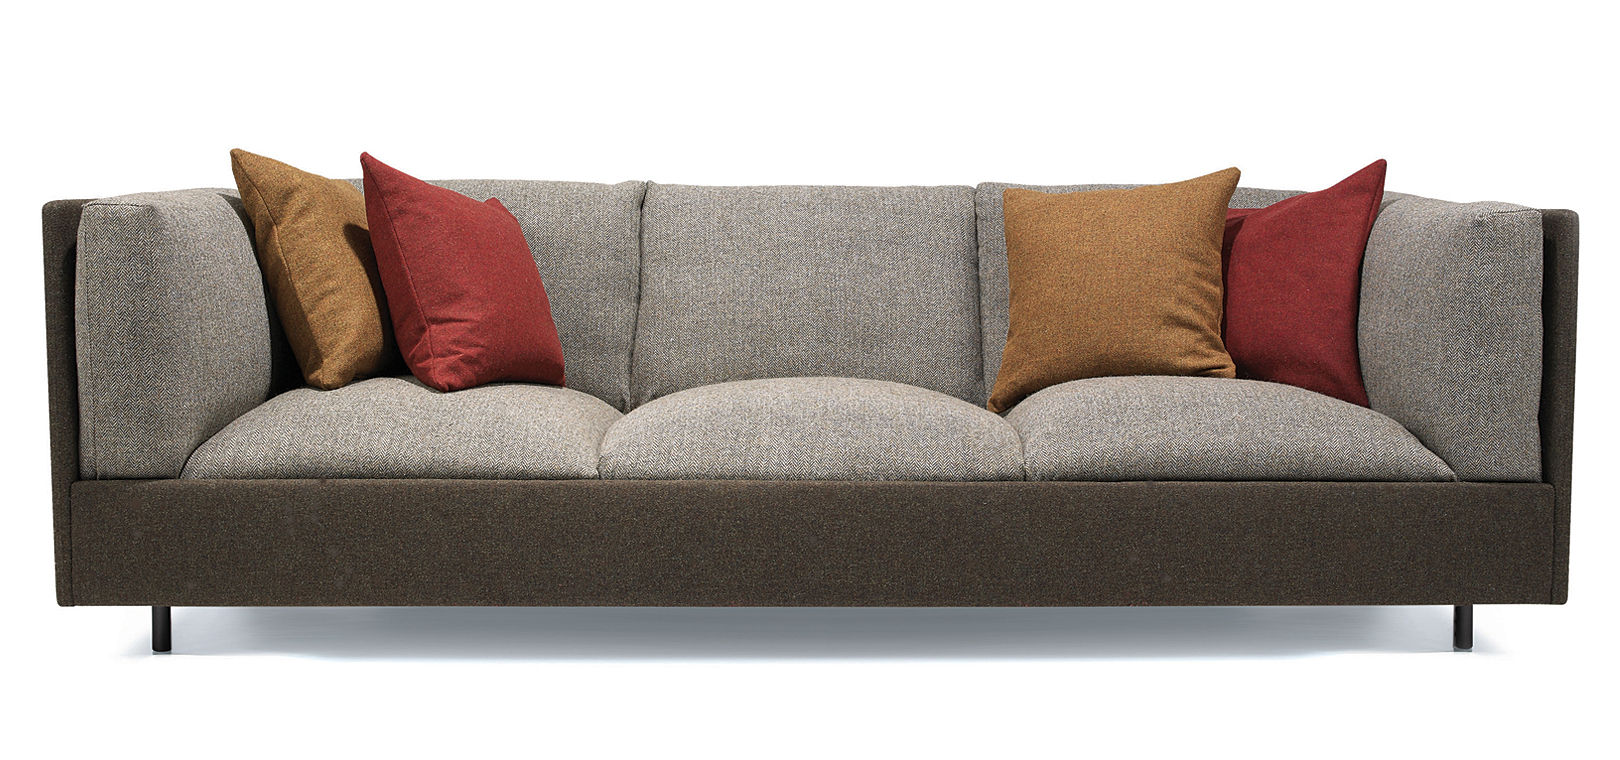 Charmant Contemporary Sofa / Steel / Fabric / Contract   TEN By Michael Sodeau